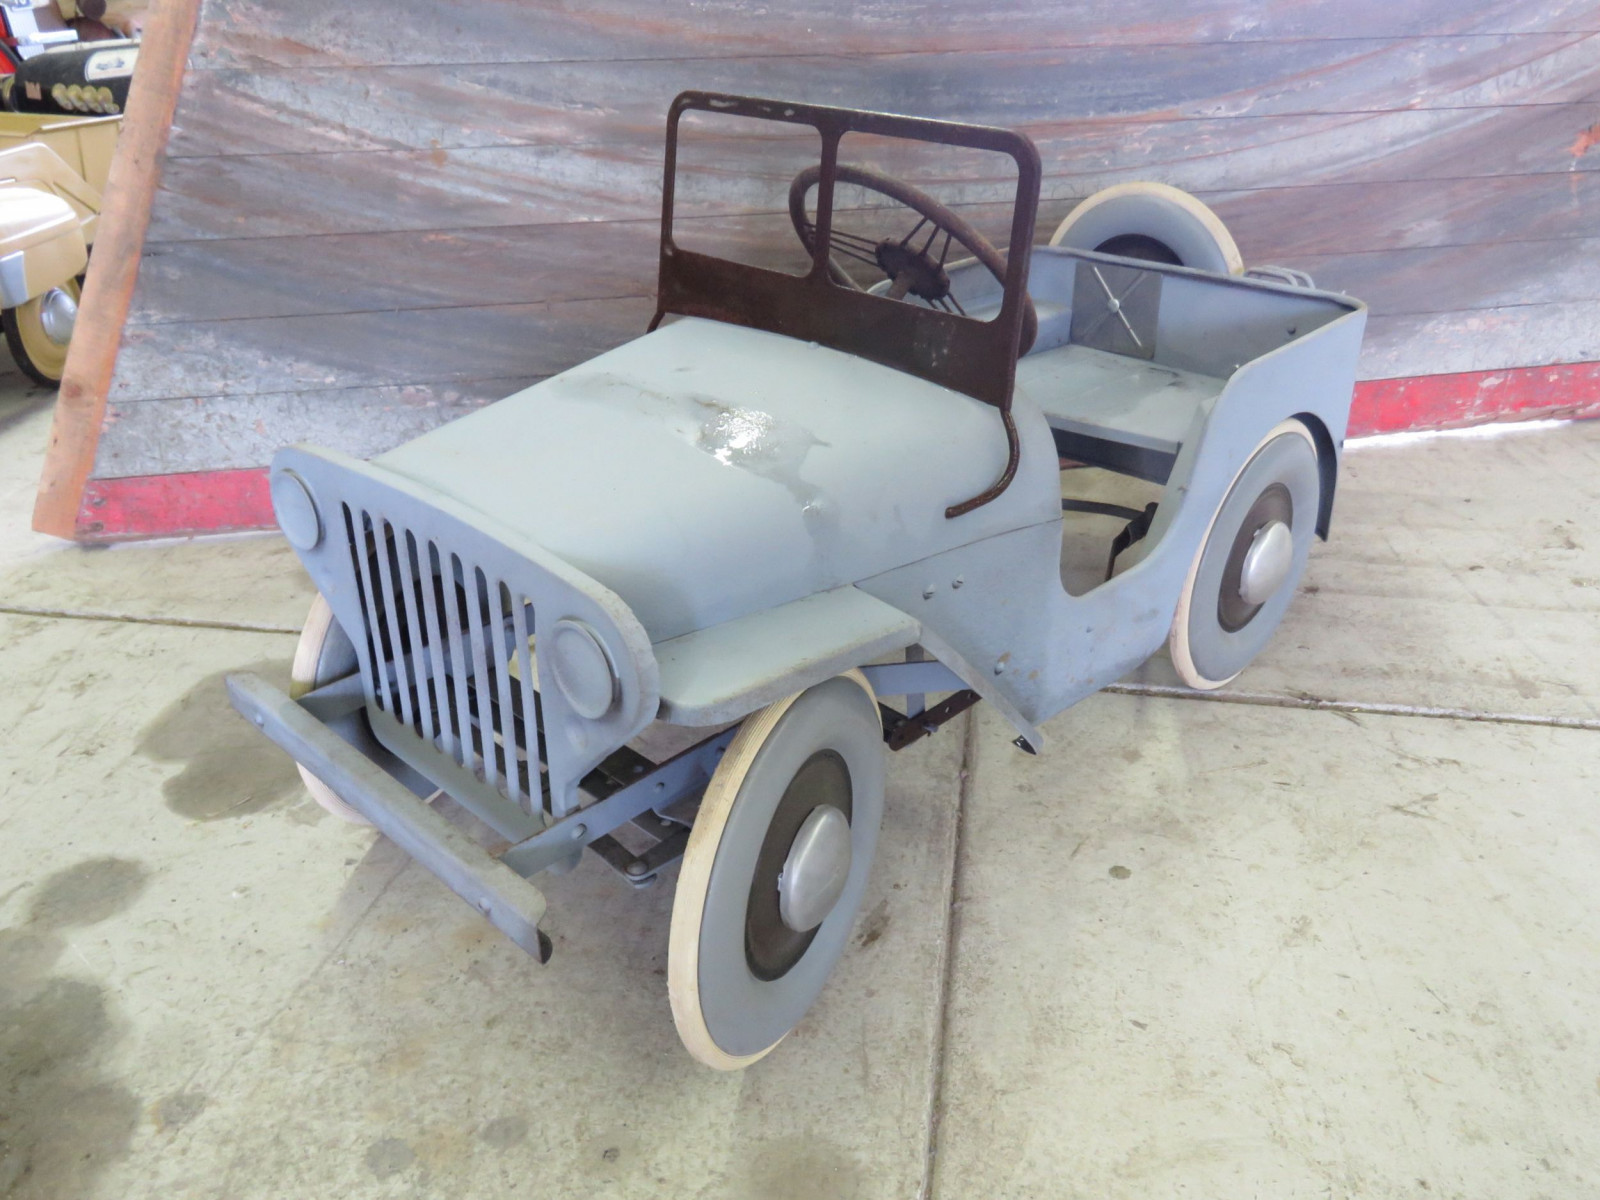 Vintage Garton Military Willys Jeep Pedal Car - Image 1